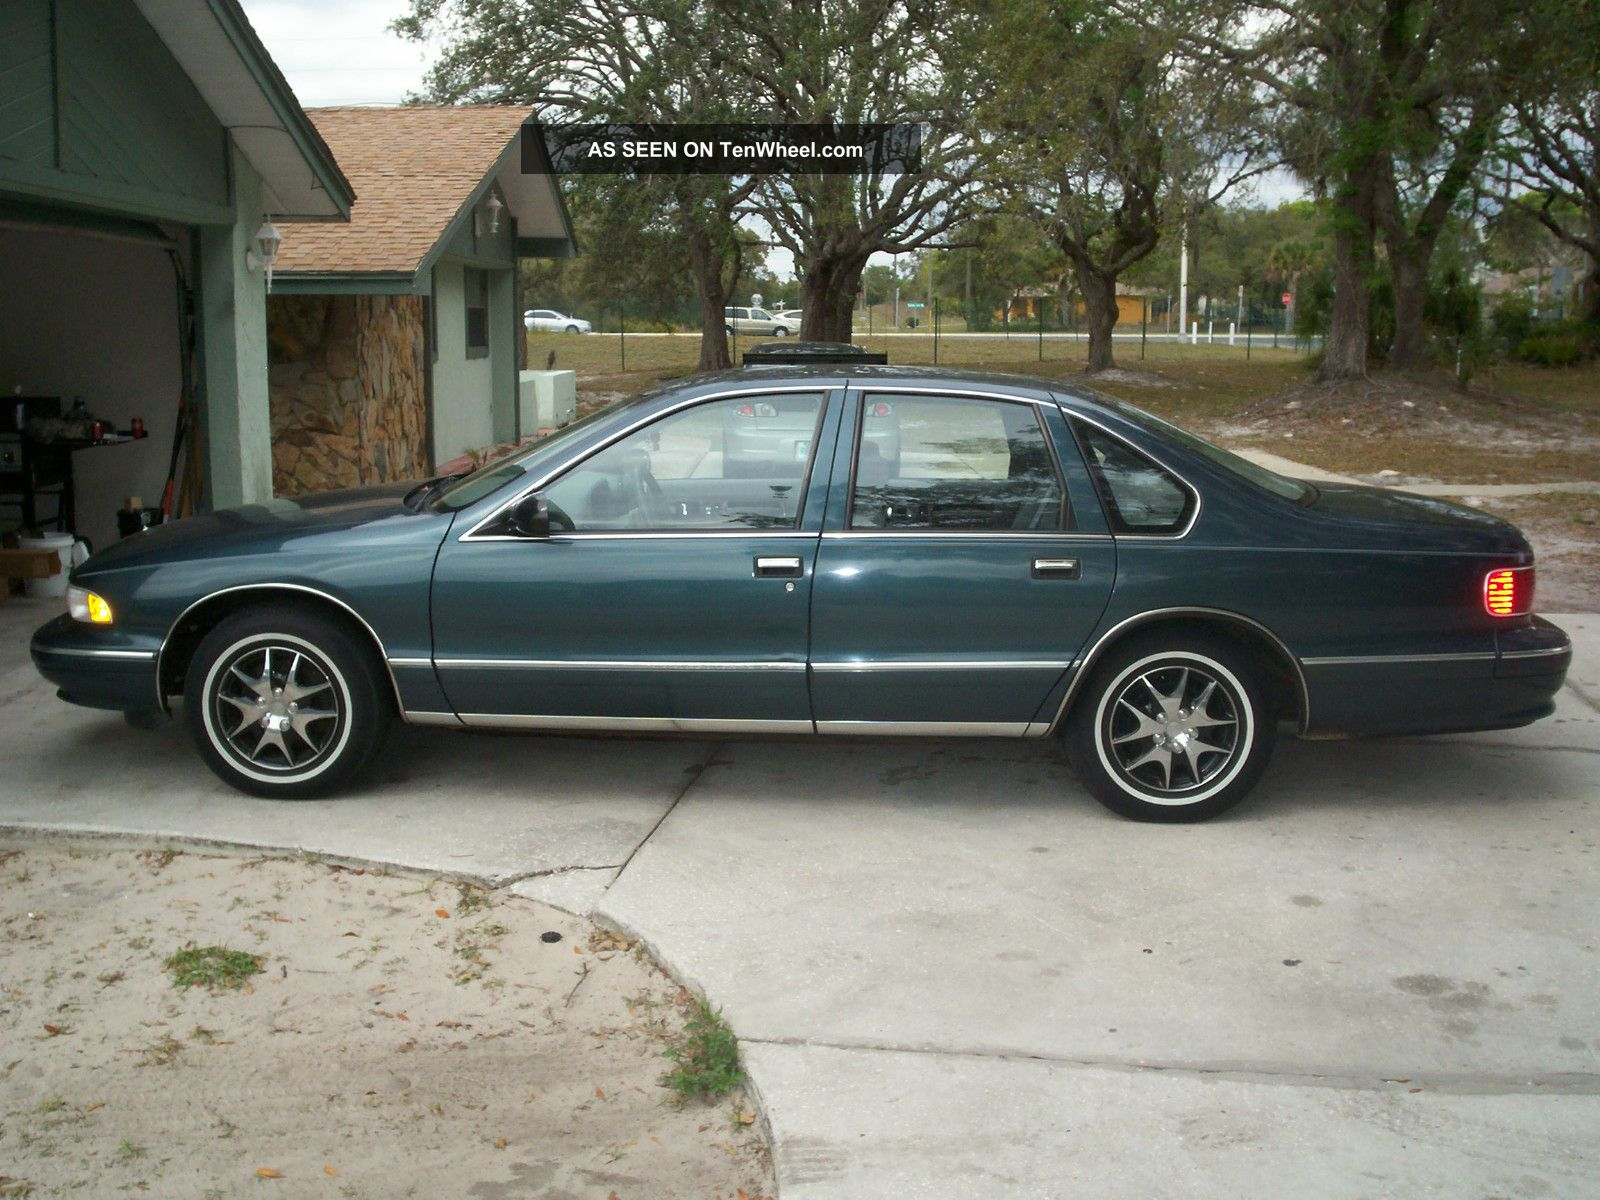 1995 Chevy Caprice Classic Quot Bubble